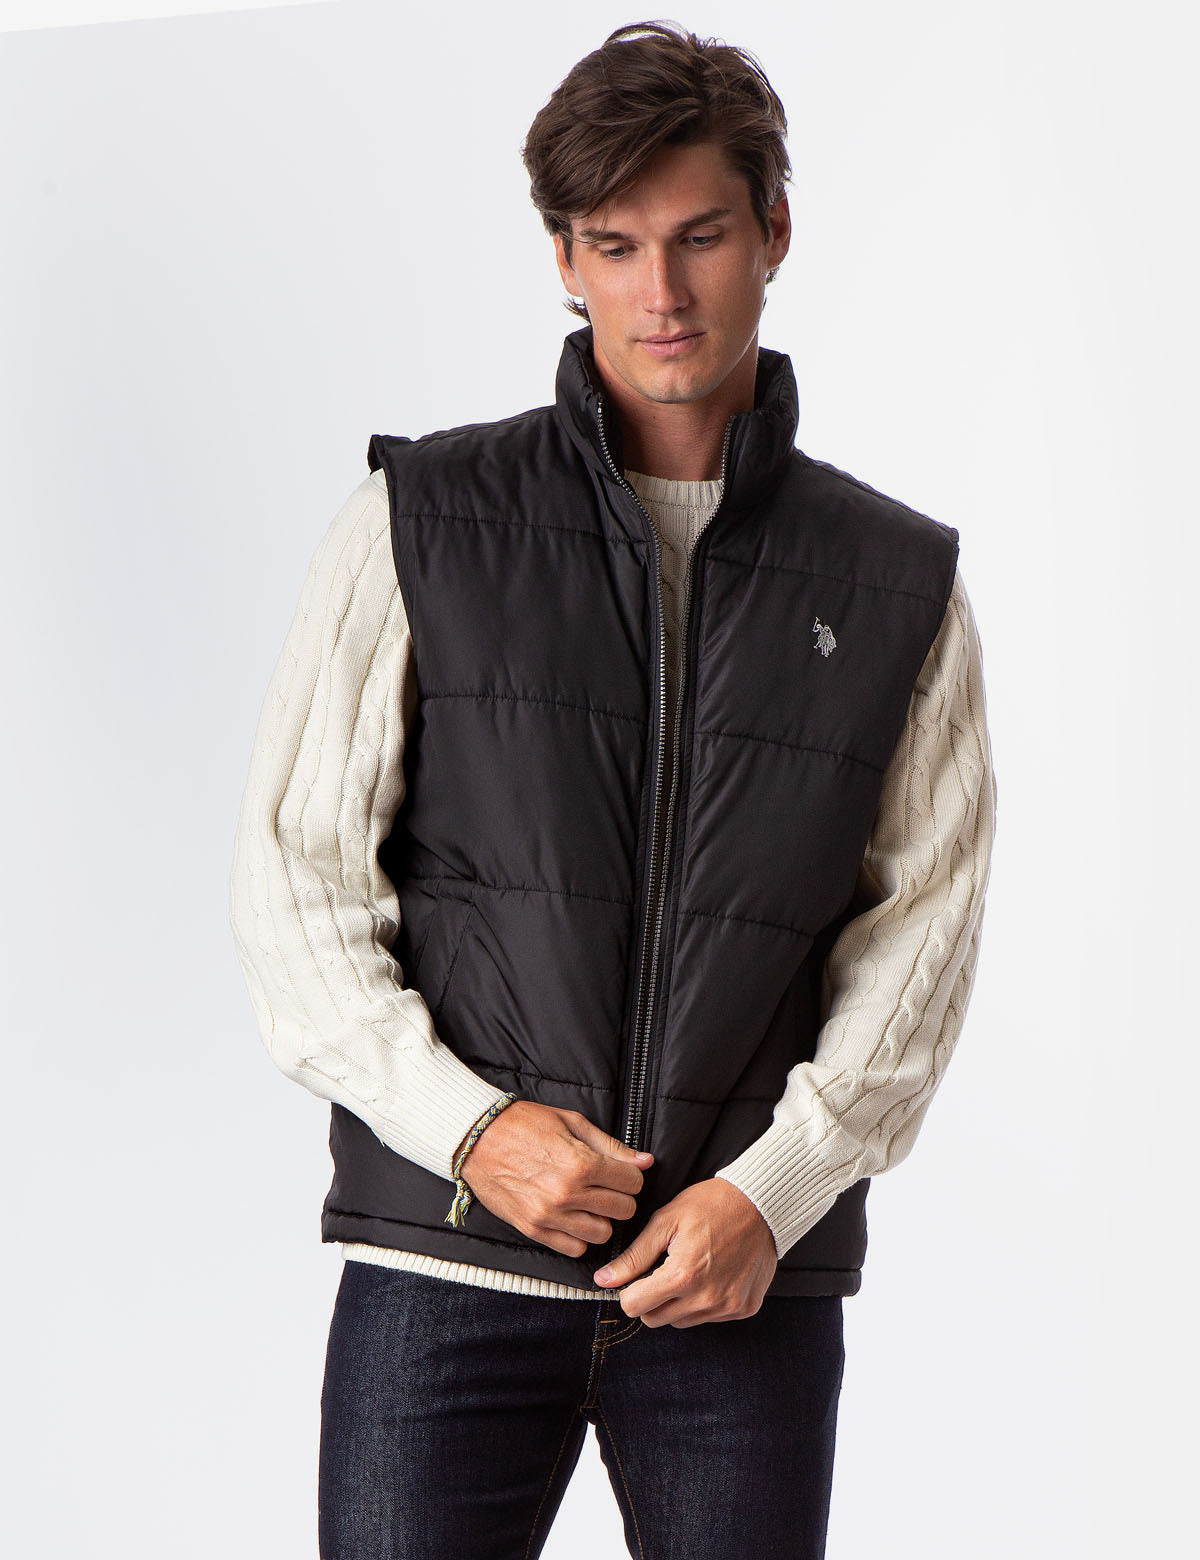 SIGNATURE VEST WITH POCKETS